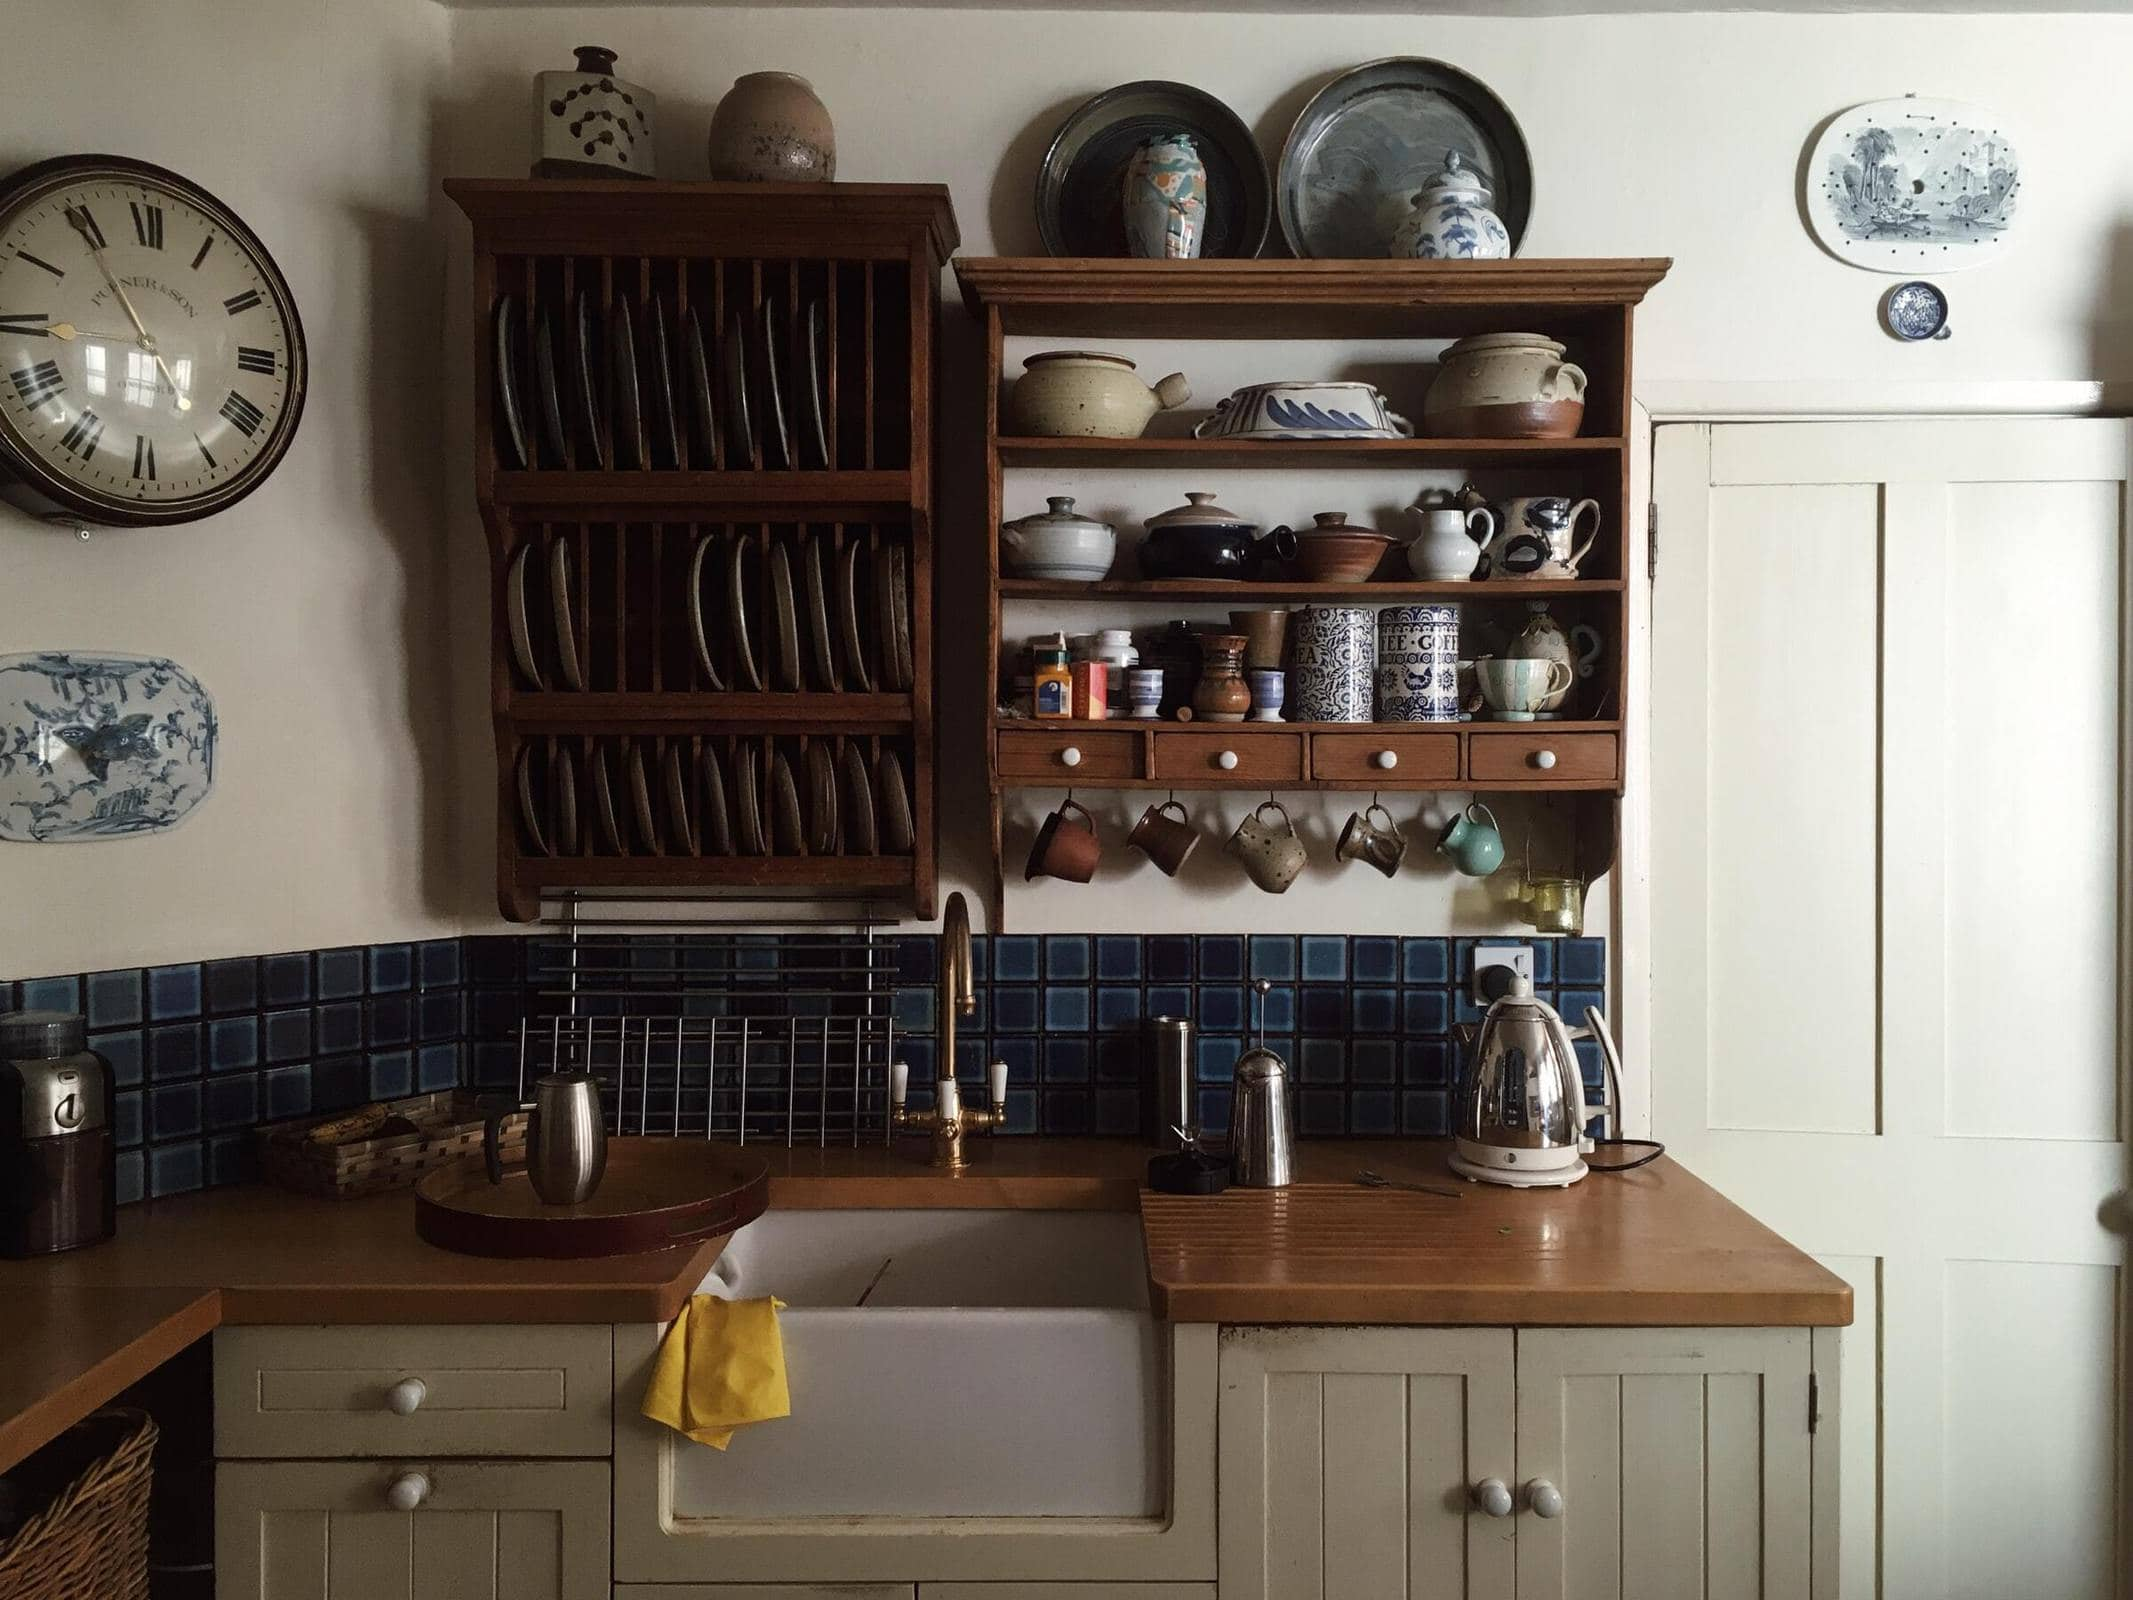 <strong>Add Some Antique Wooden Cabinets Or Dish Racks</strong>